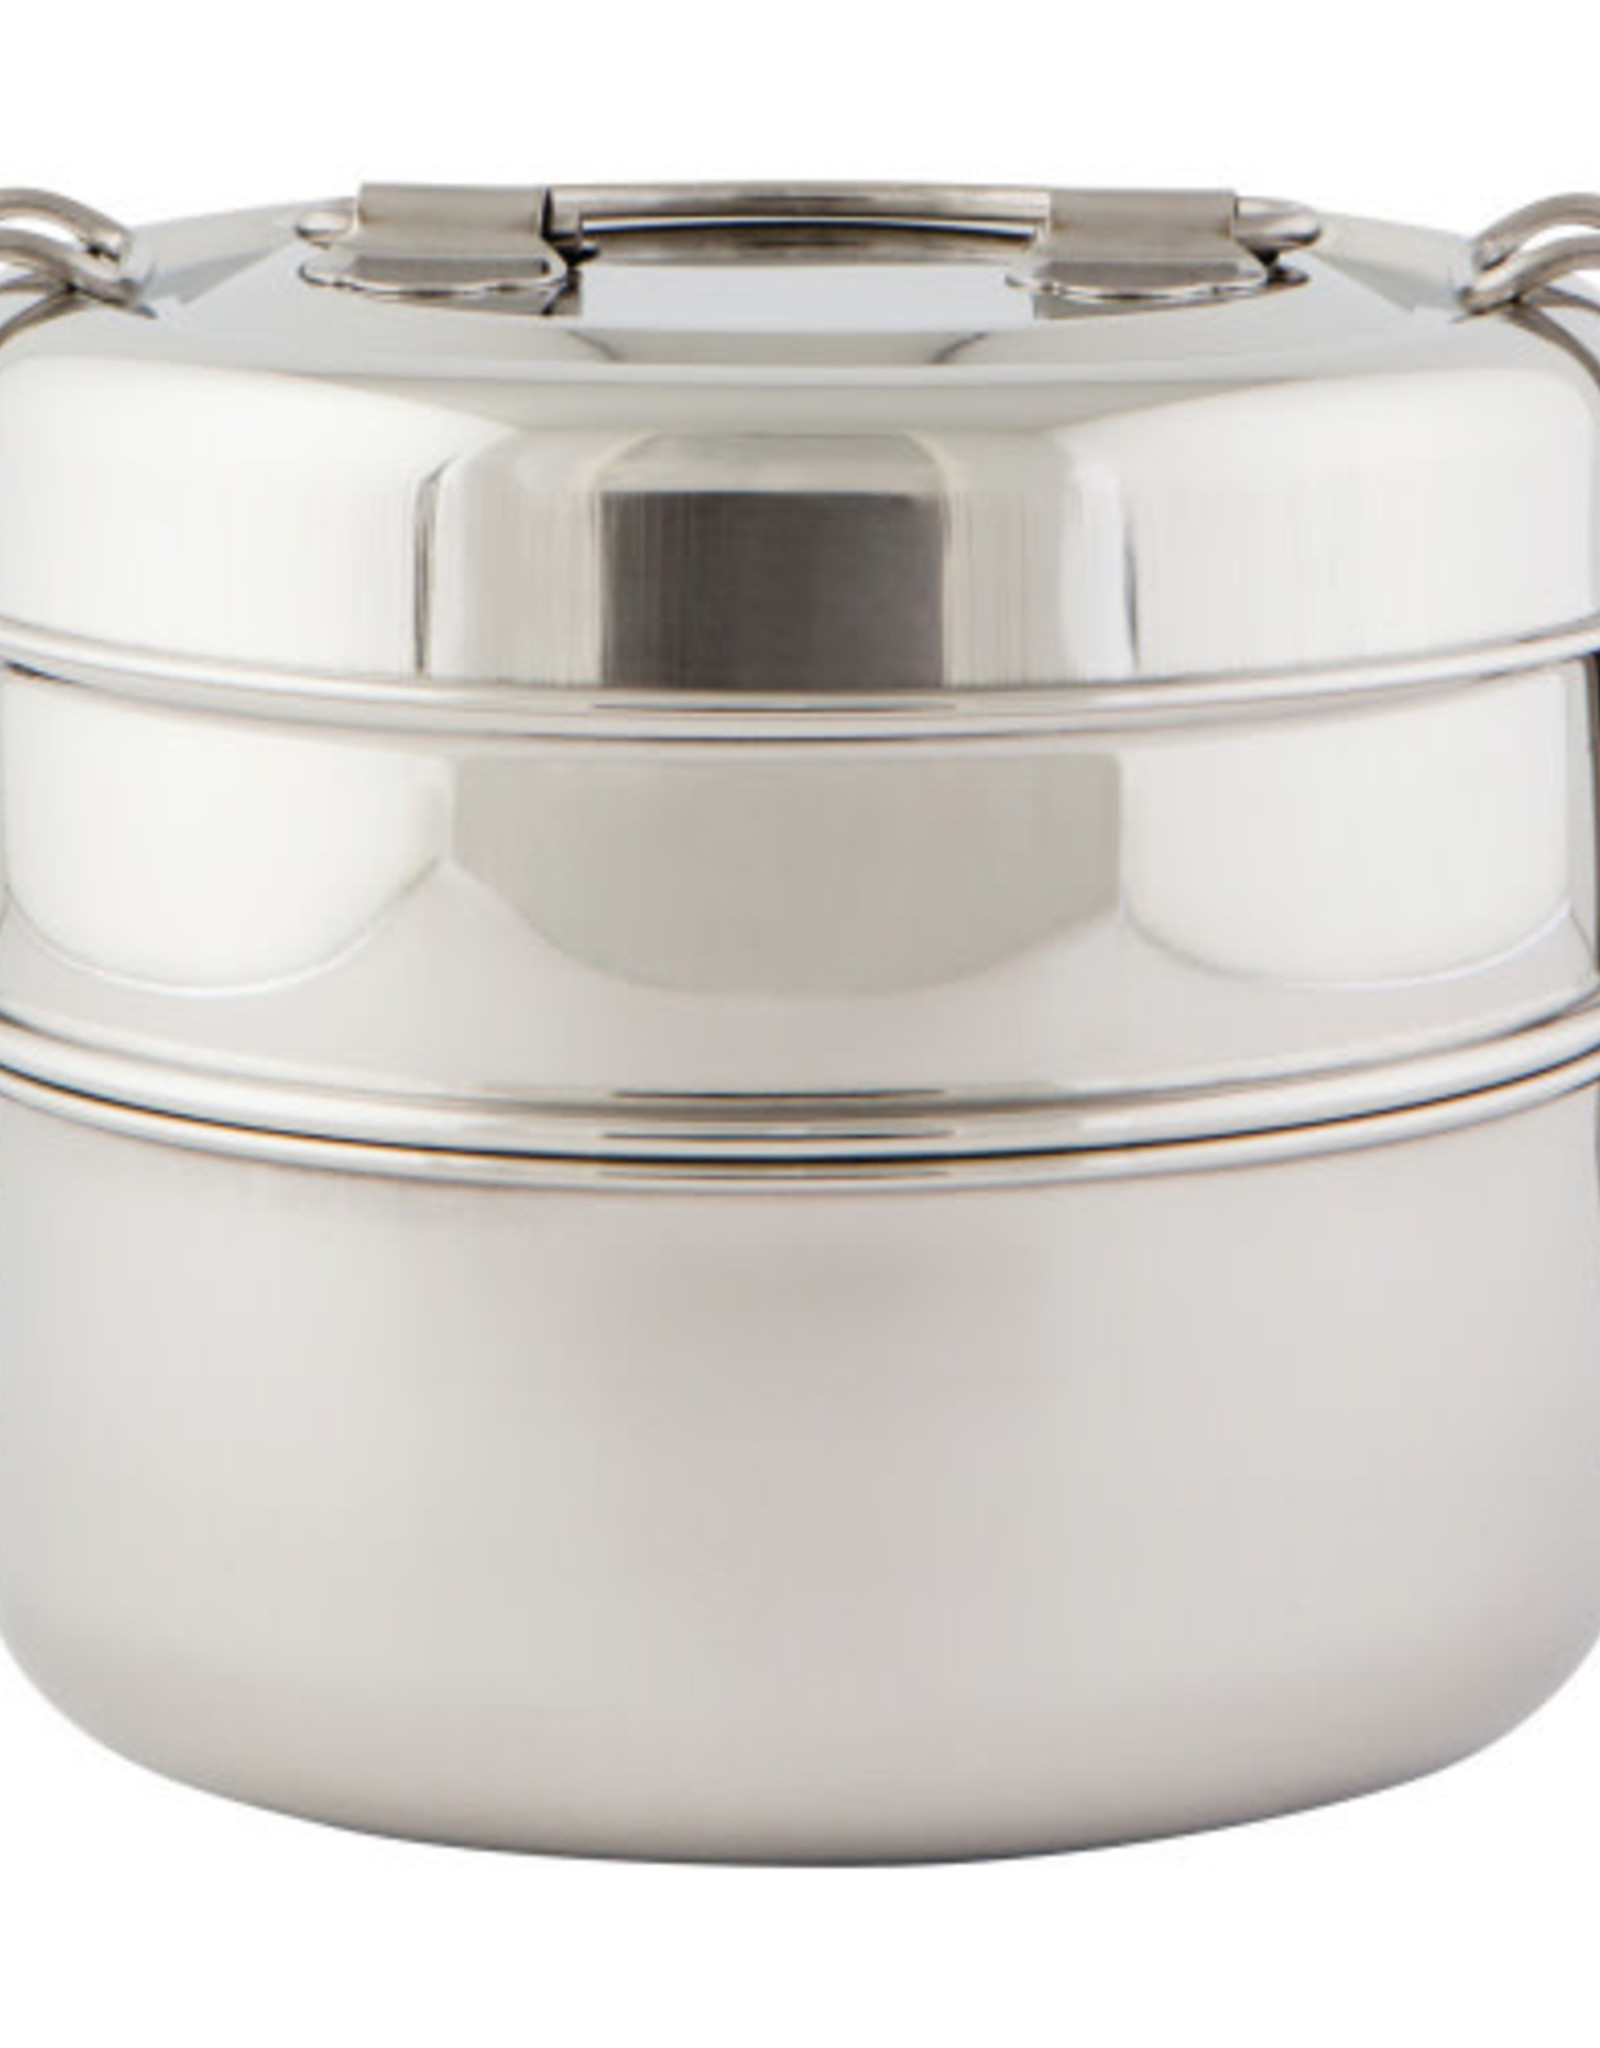 Tiffin Lunch Container